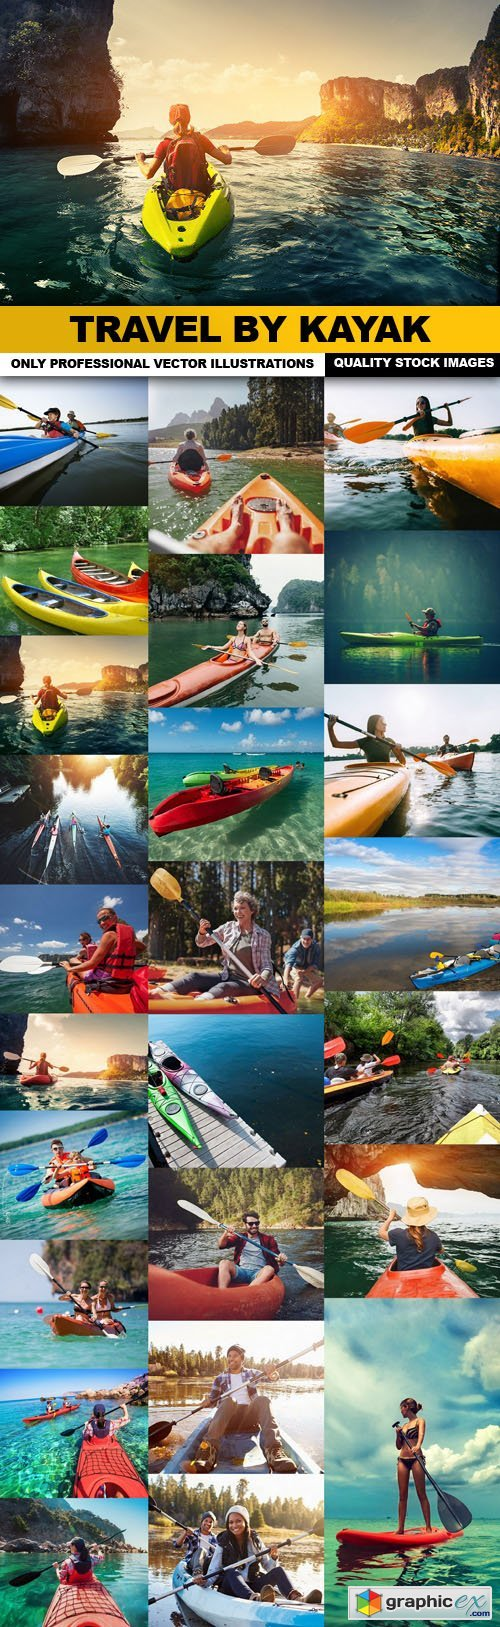 Travel By Kayak - 25 HQ Images